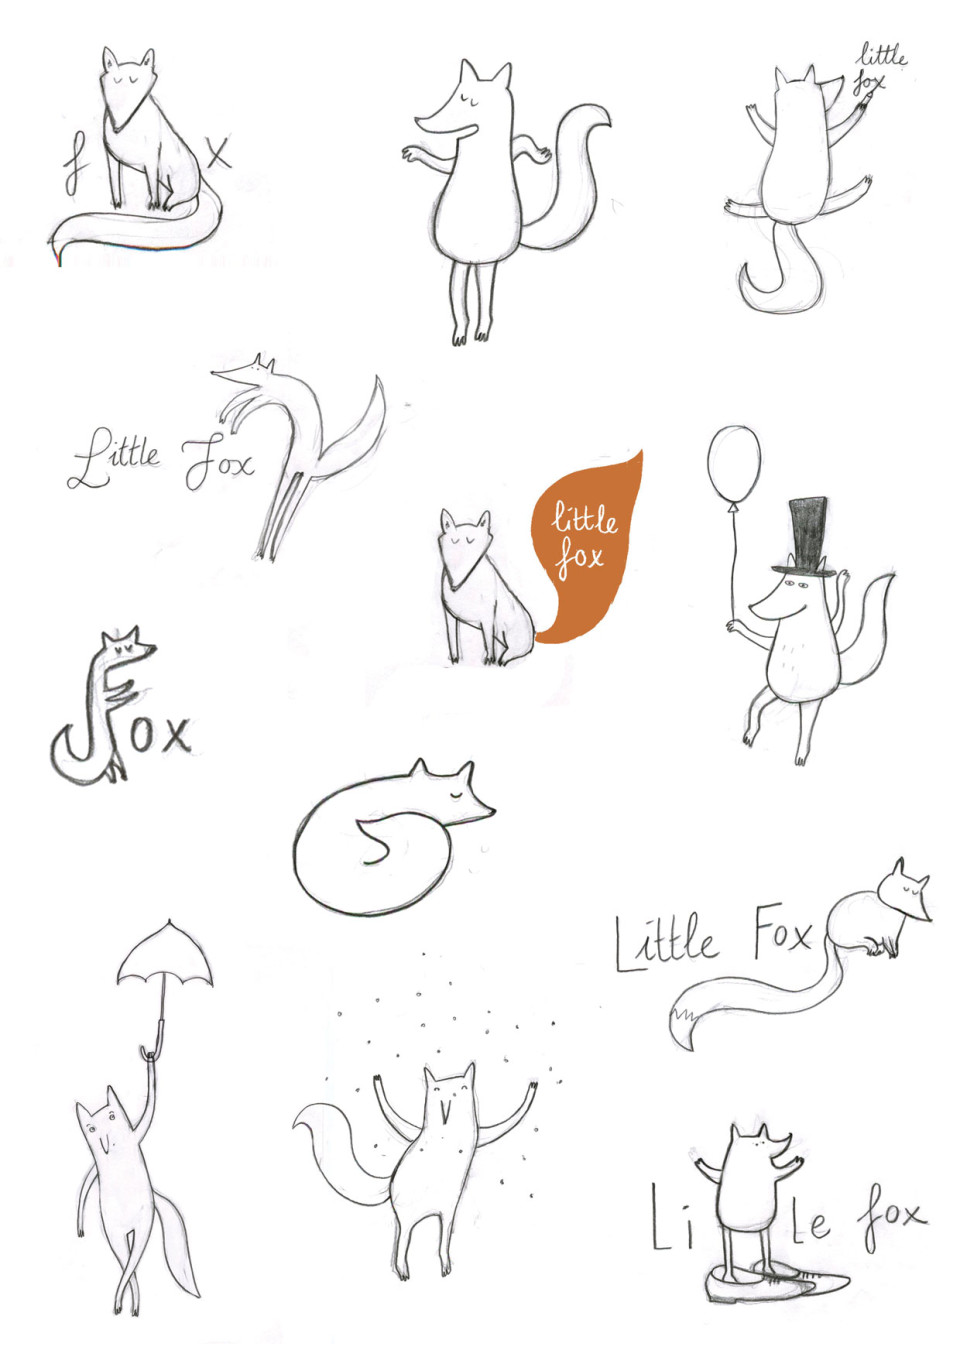 little fox logo design by ellen vesters illustrator